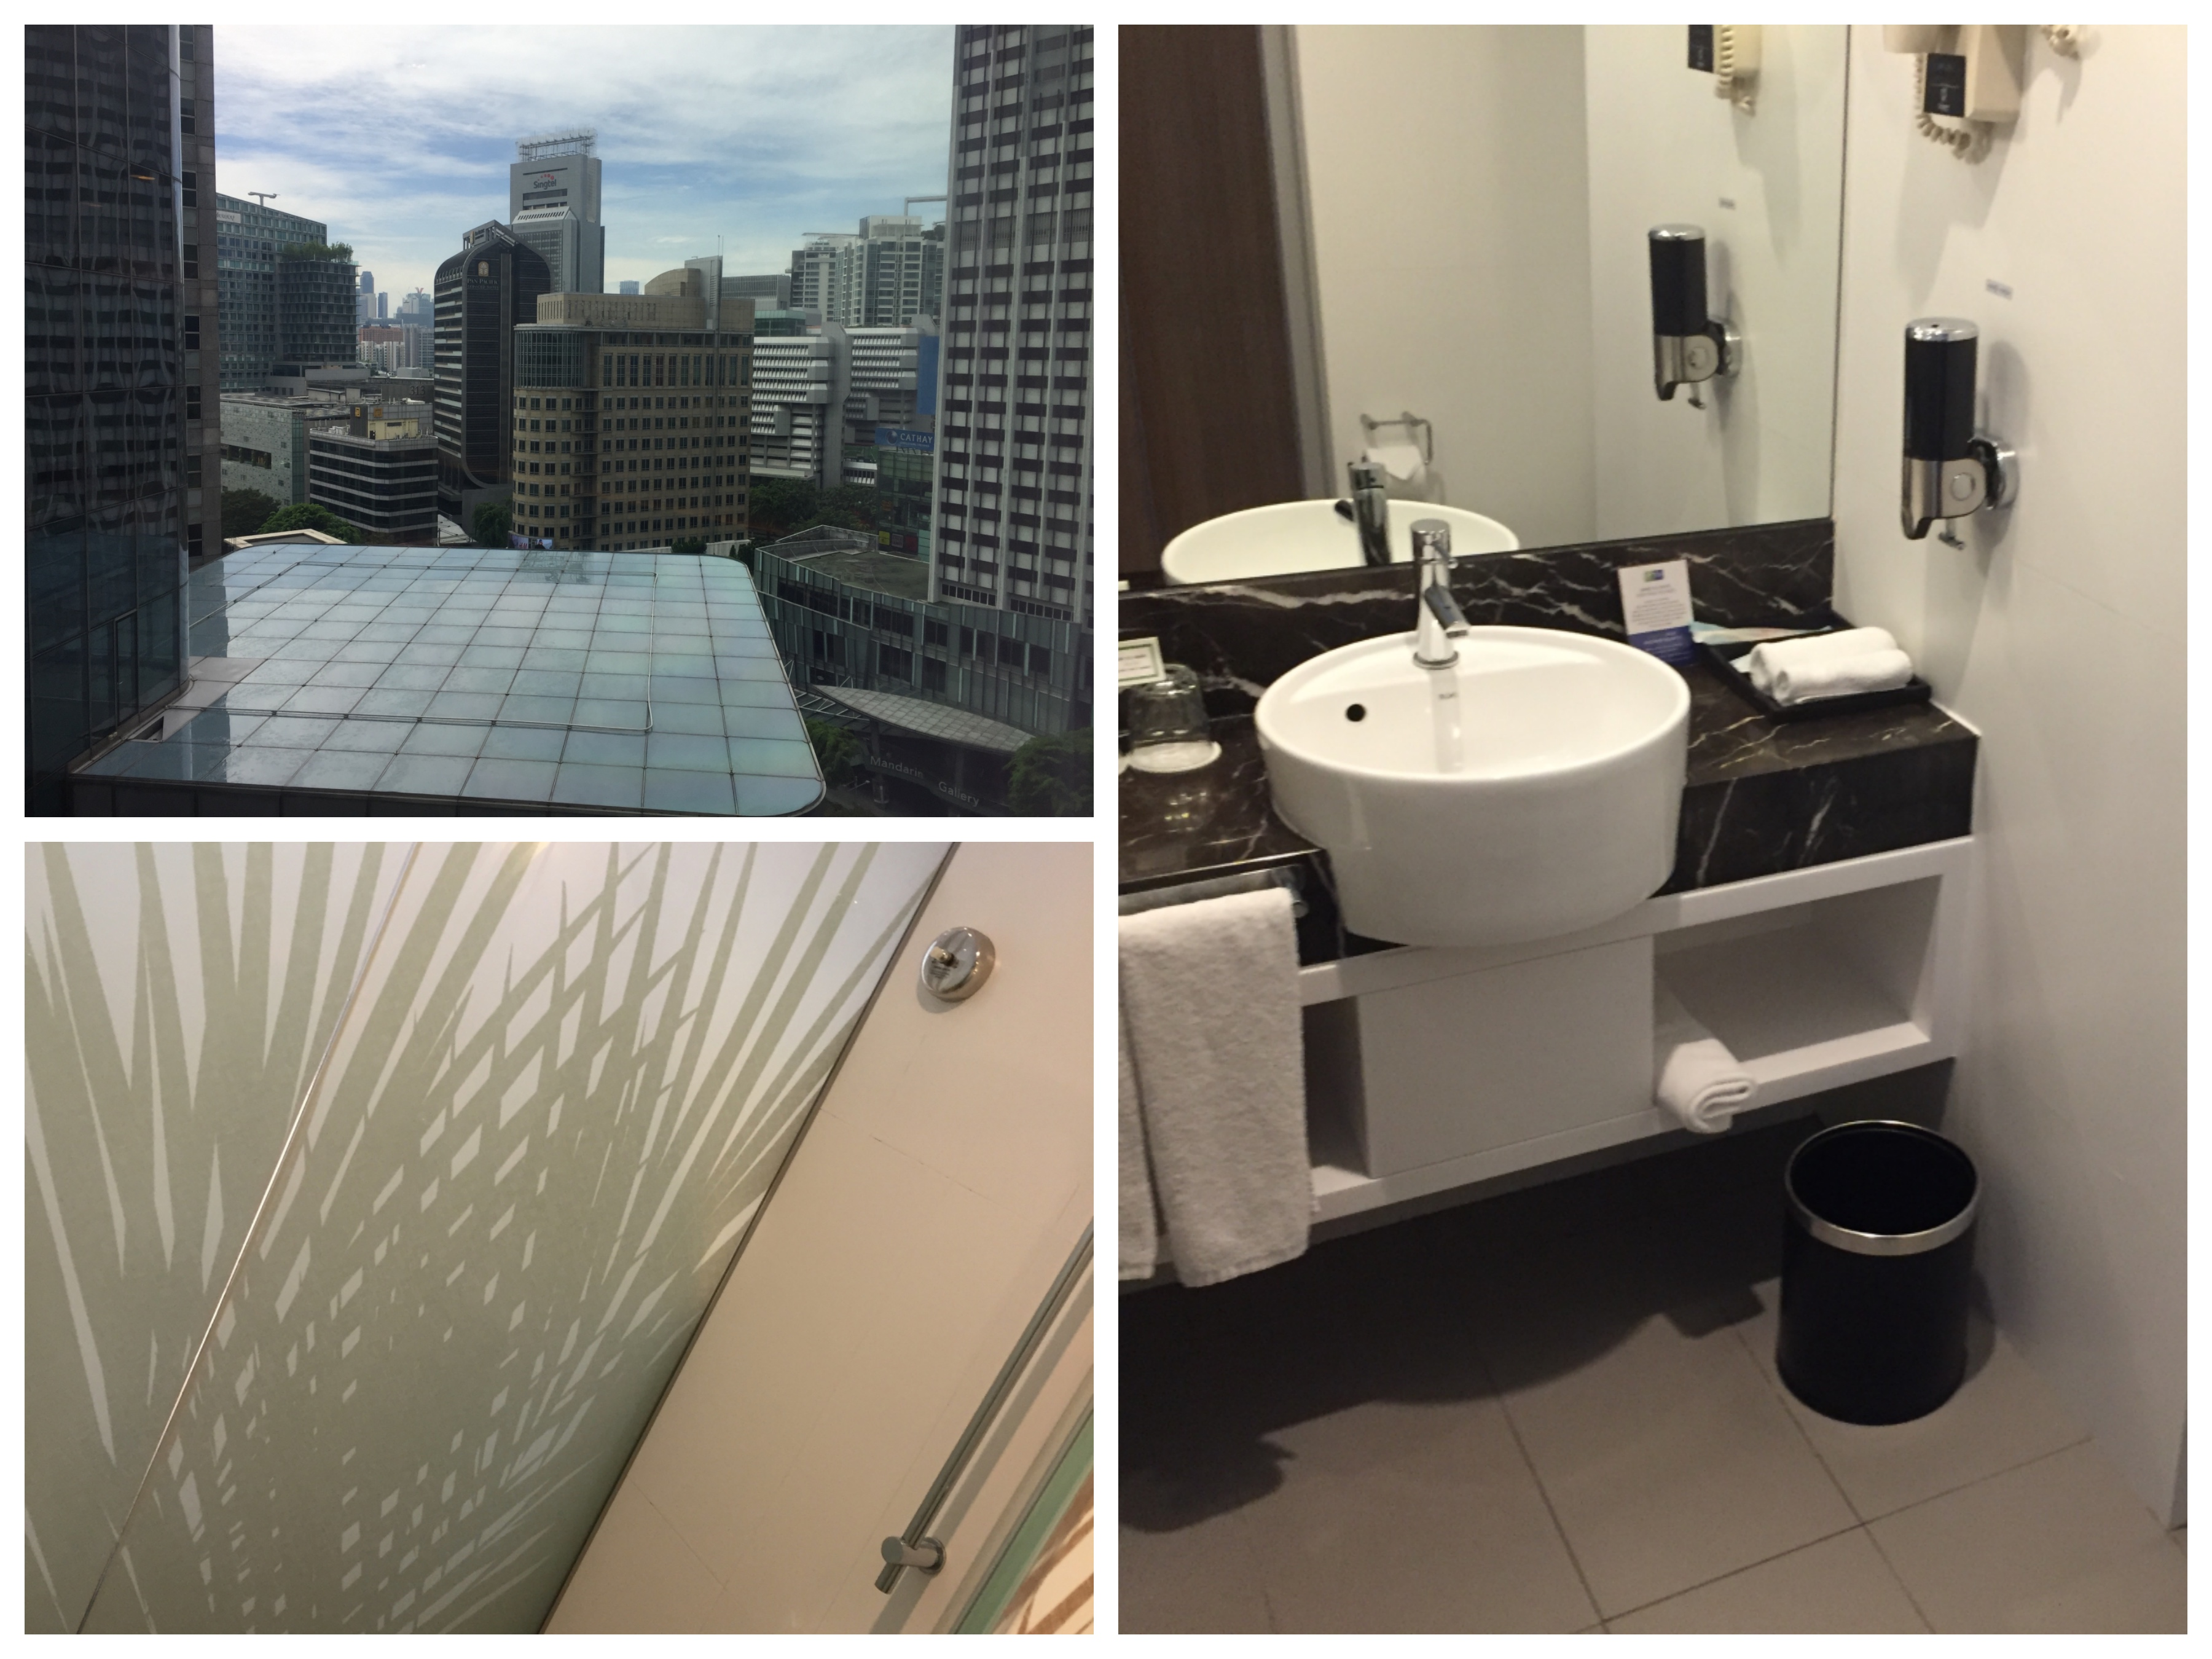 Bathroom Stall Em Portugues review: holiday inn express, orchard road, singapore - miles from